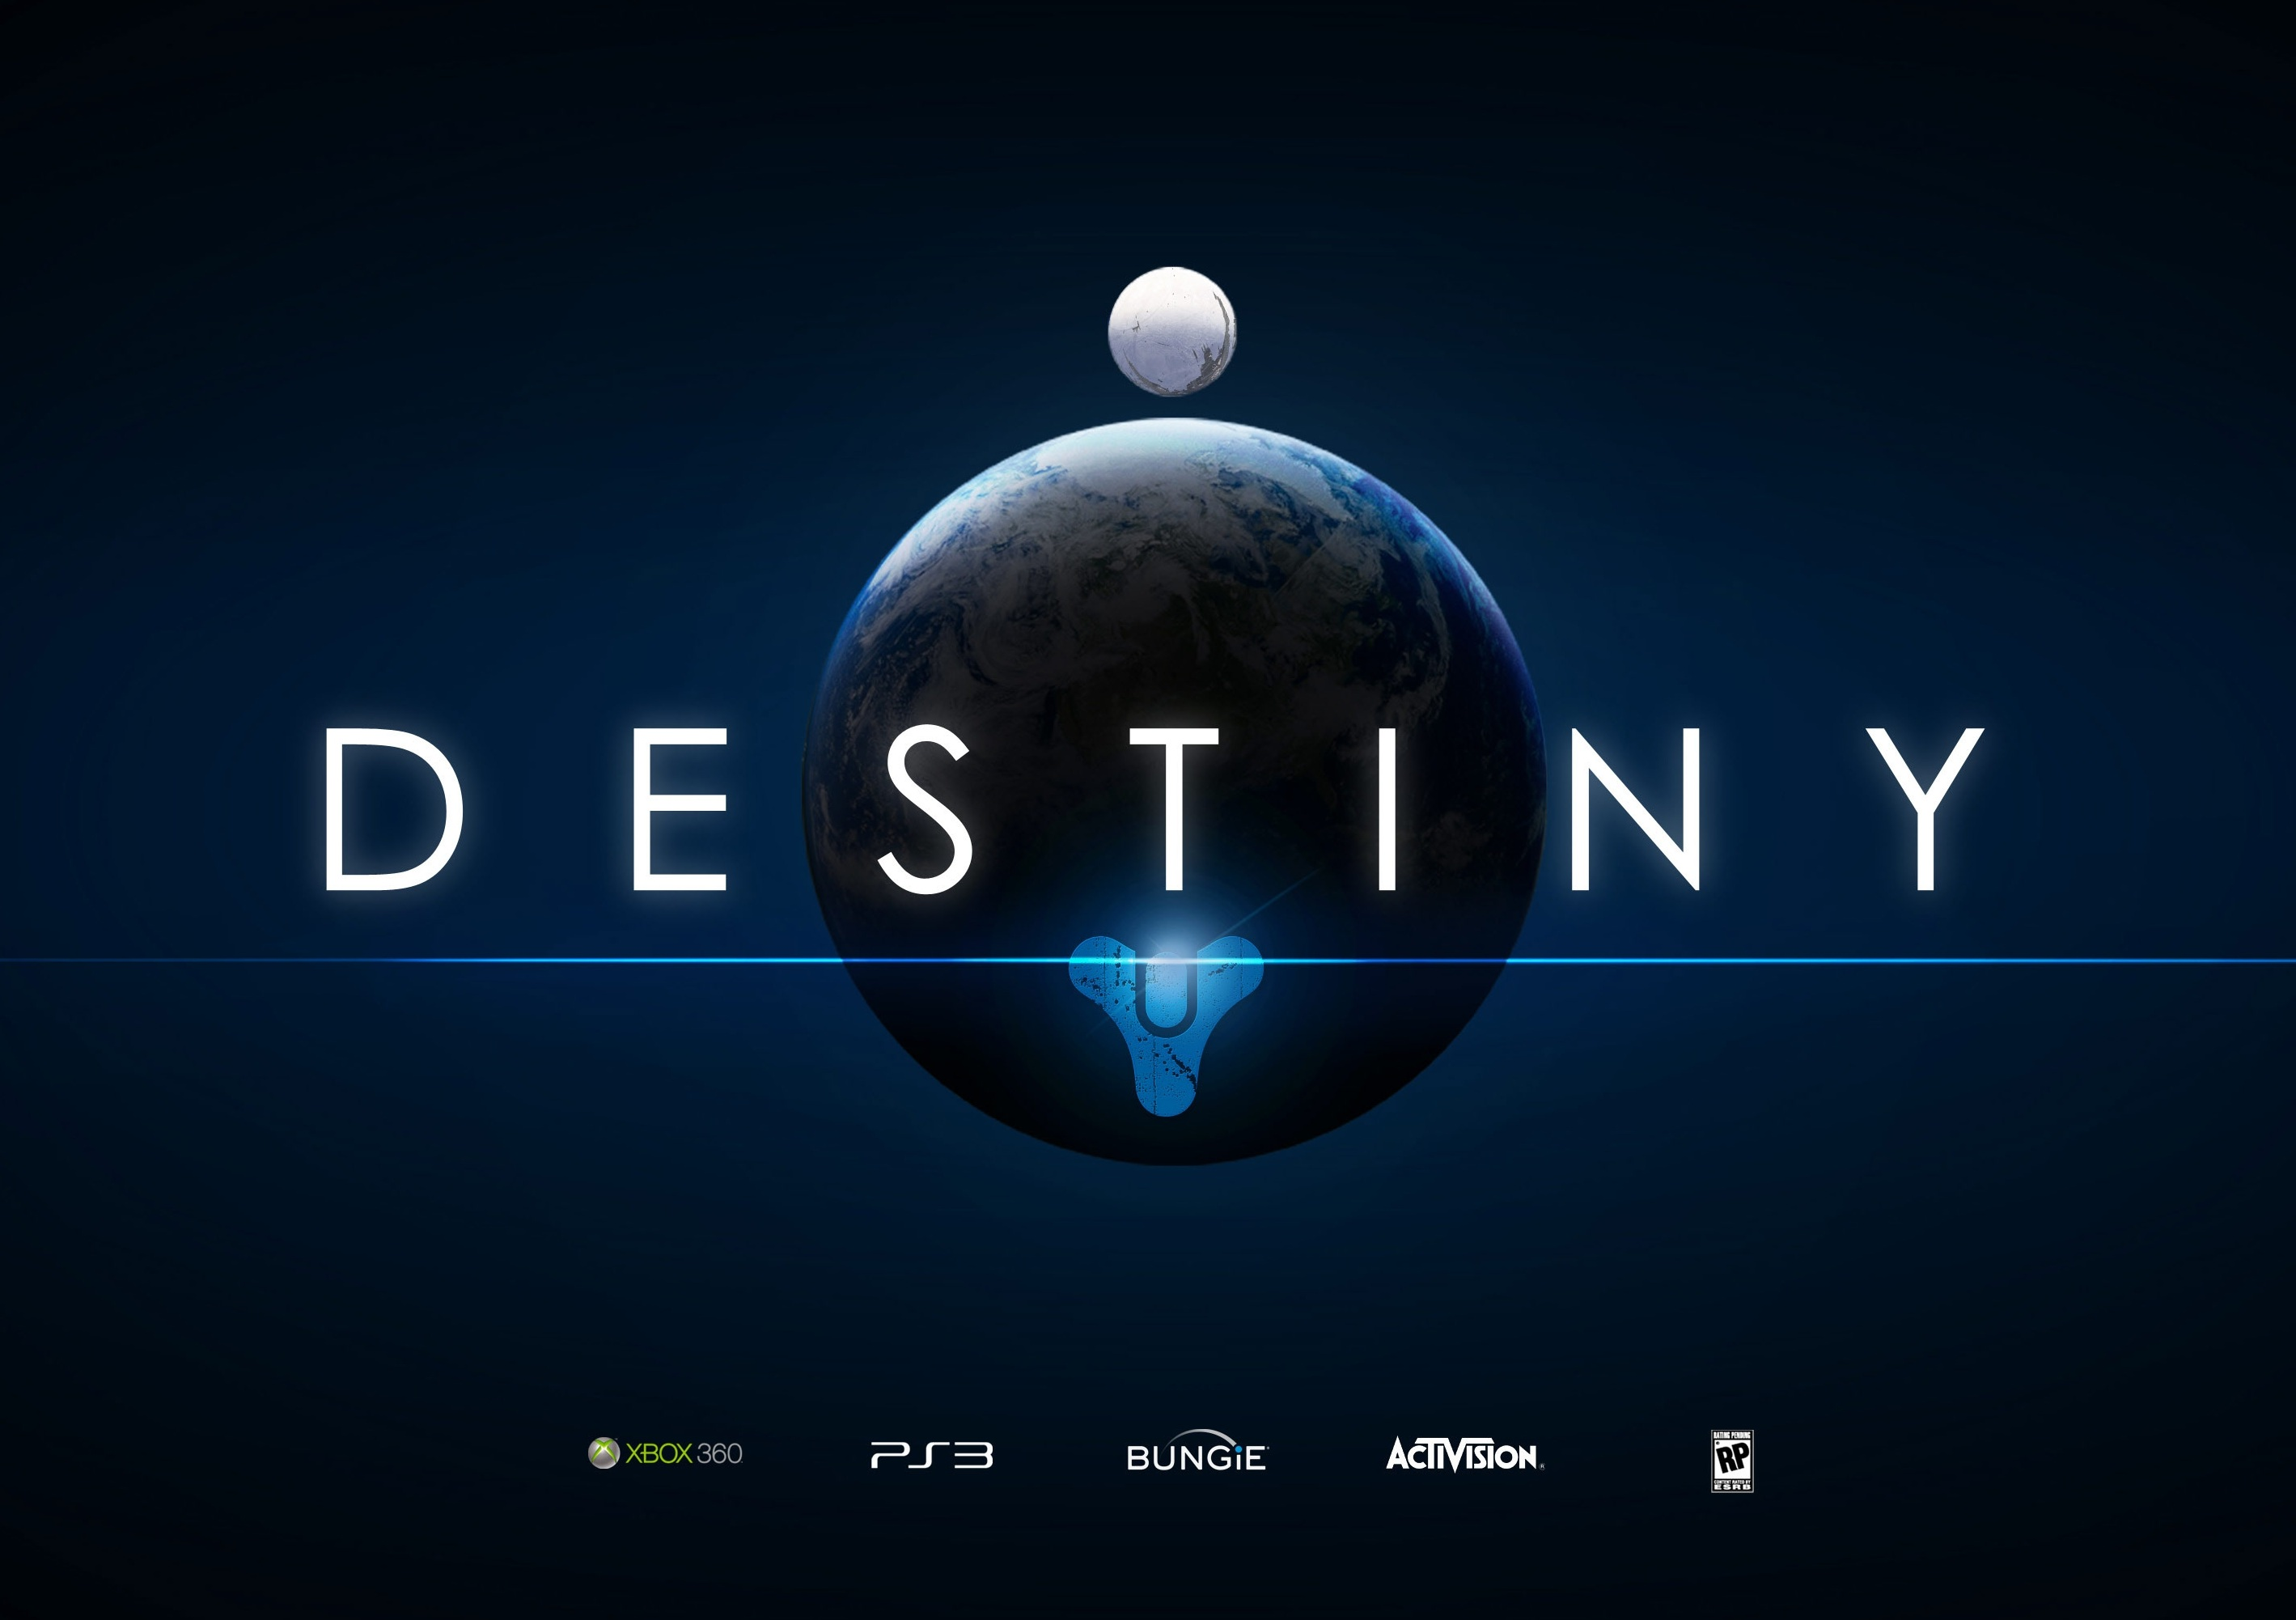 New story details leak concerning Bungie's next game, Destiny